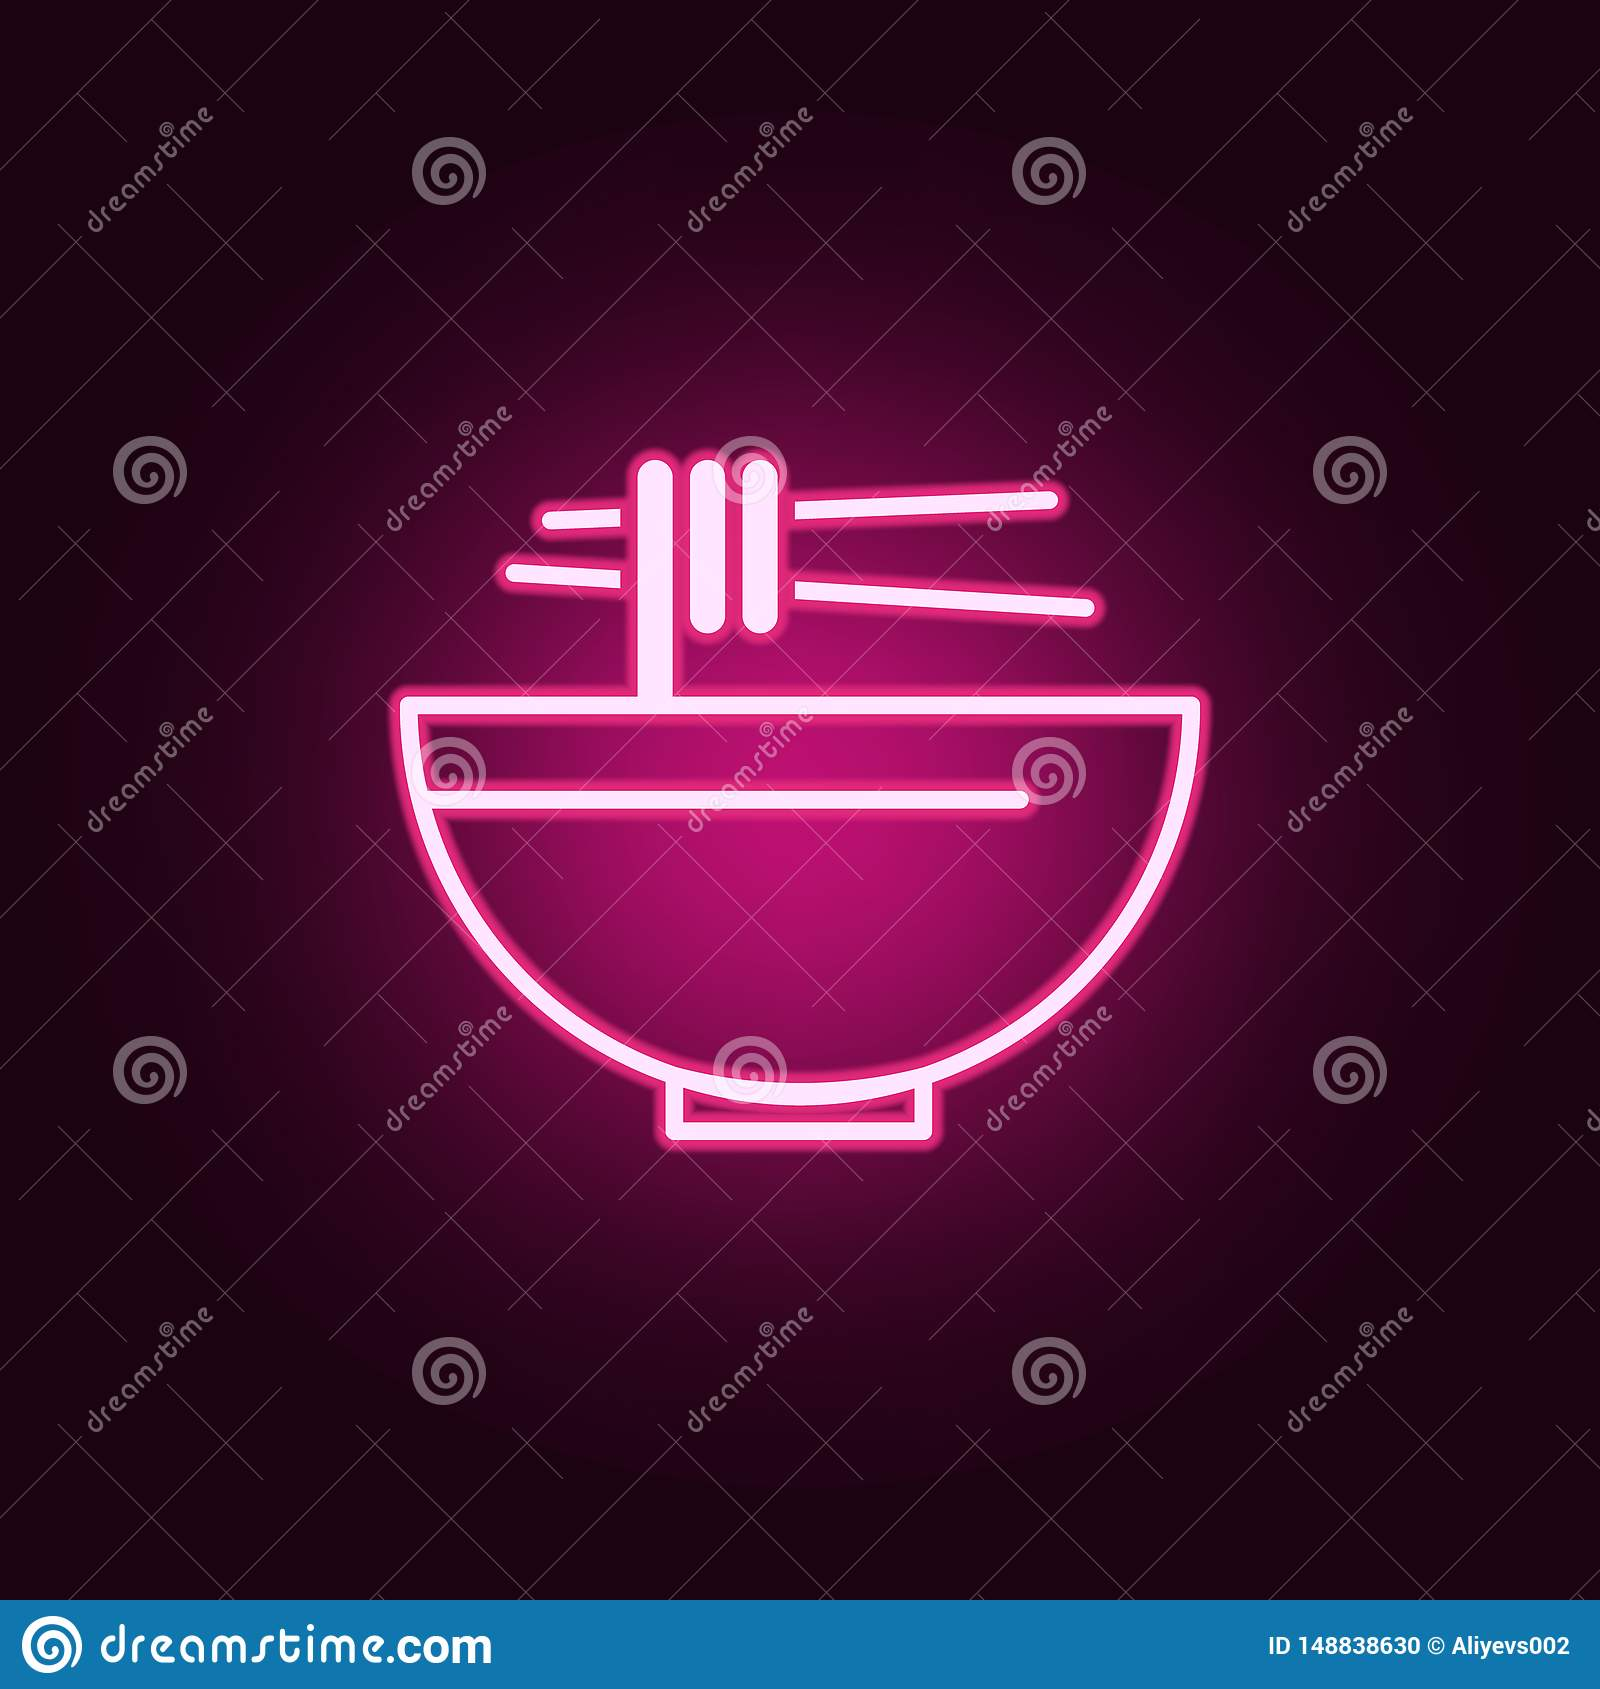 paragraph sign neon icon. Elements of web set. Simple icon for websites, web design, mobile app, info graphics